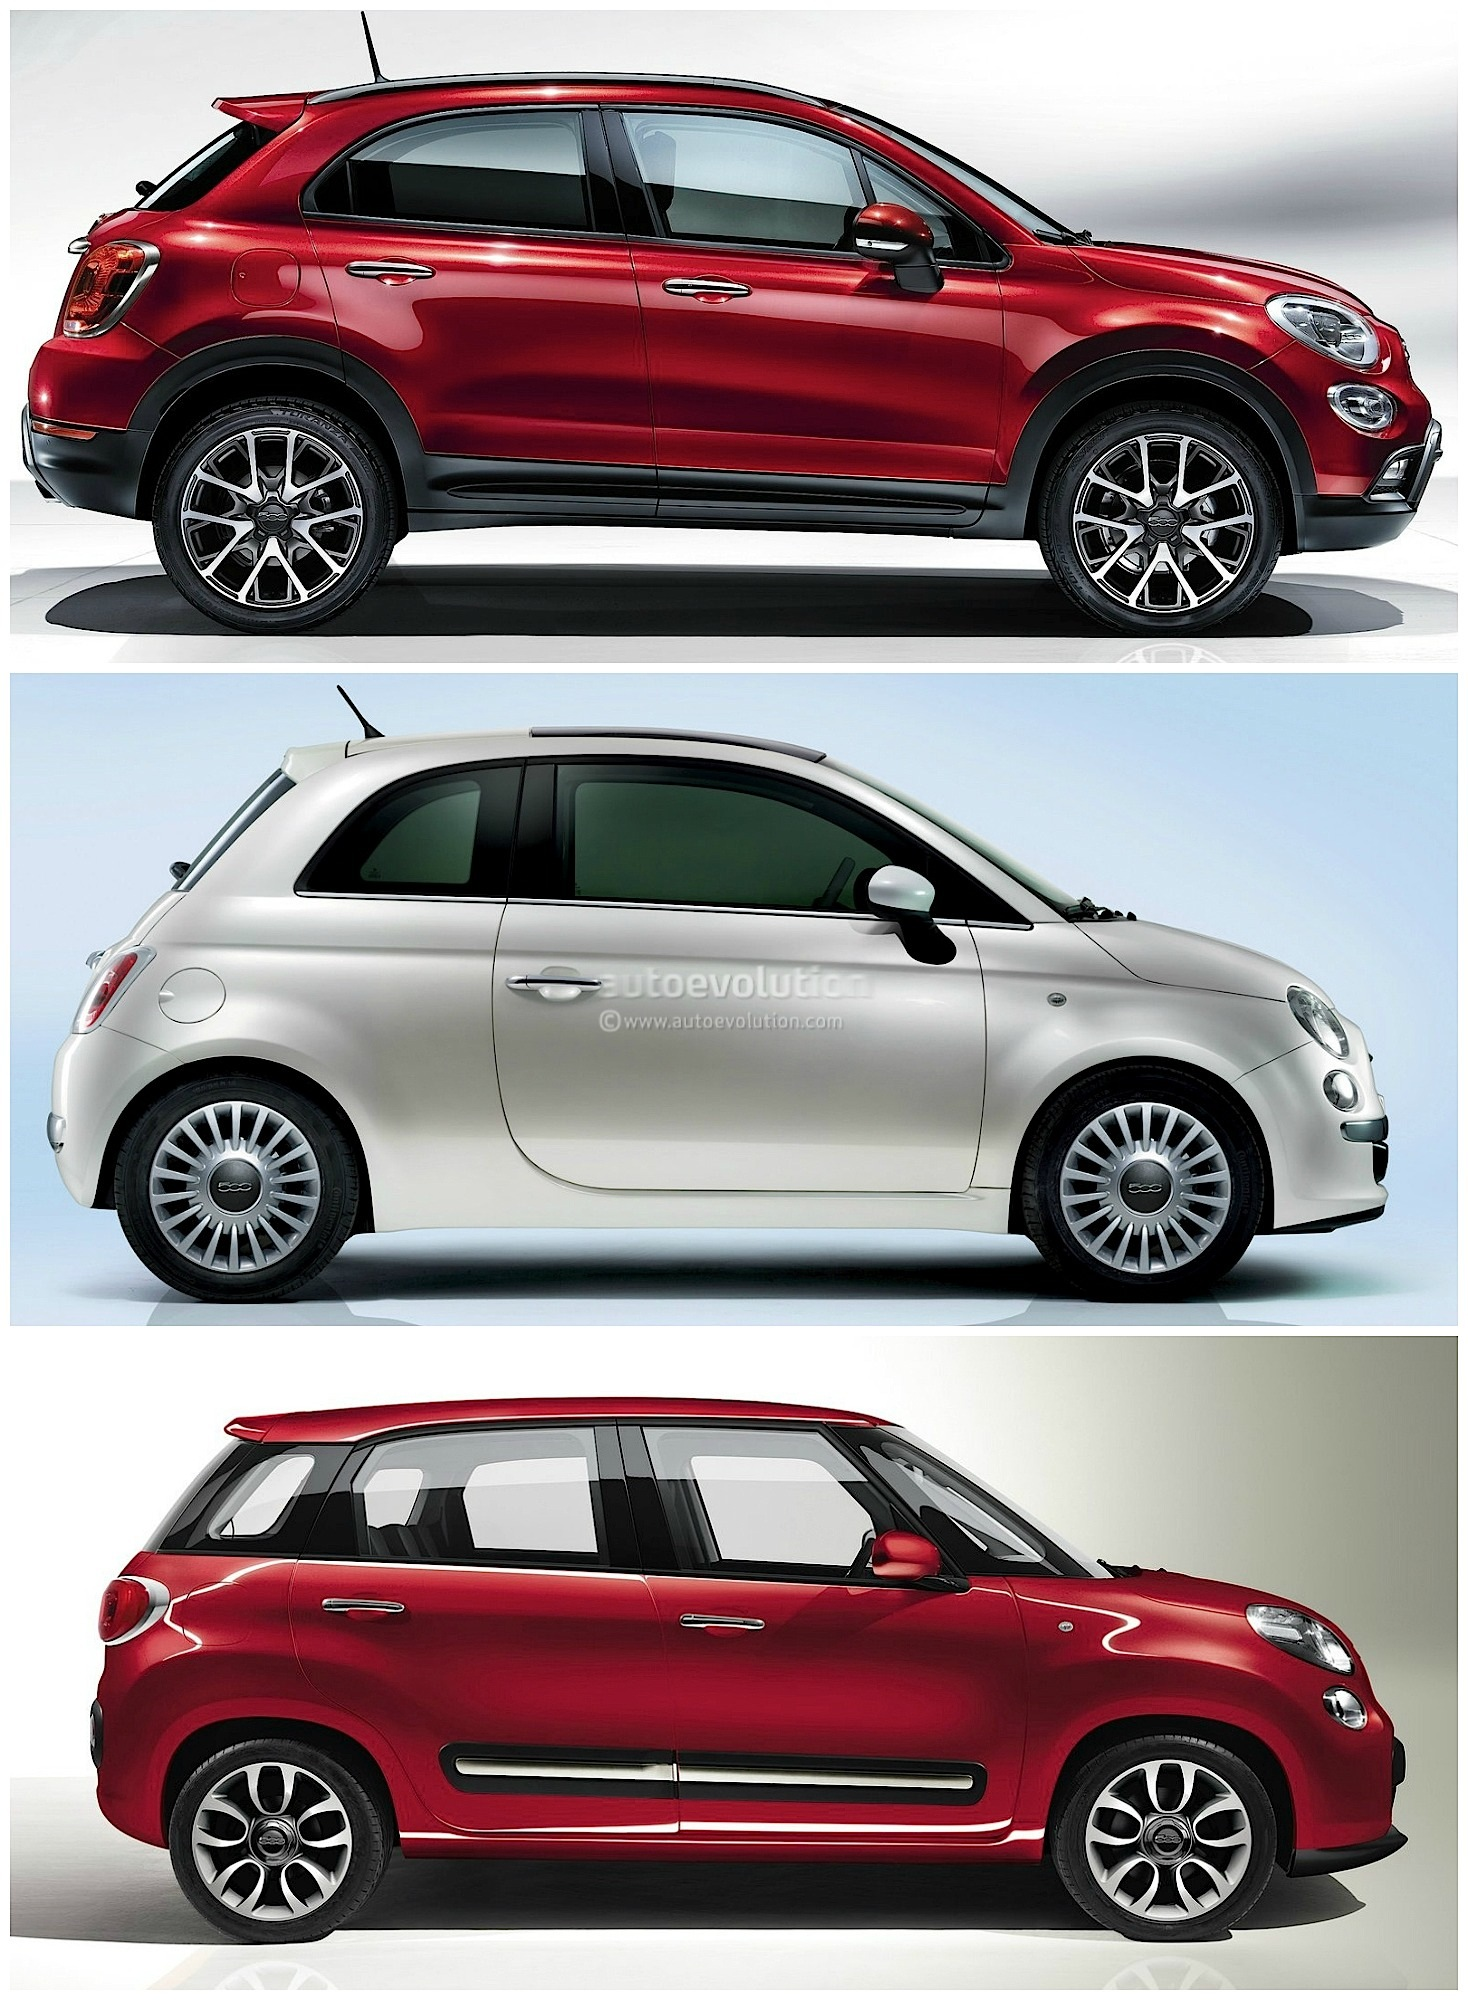 Fiat 500X Crossover >> Fiat 500X vs 500L vs 500: Italian Family Comparison - autoevolution